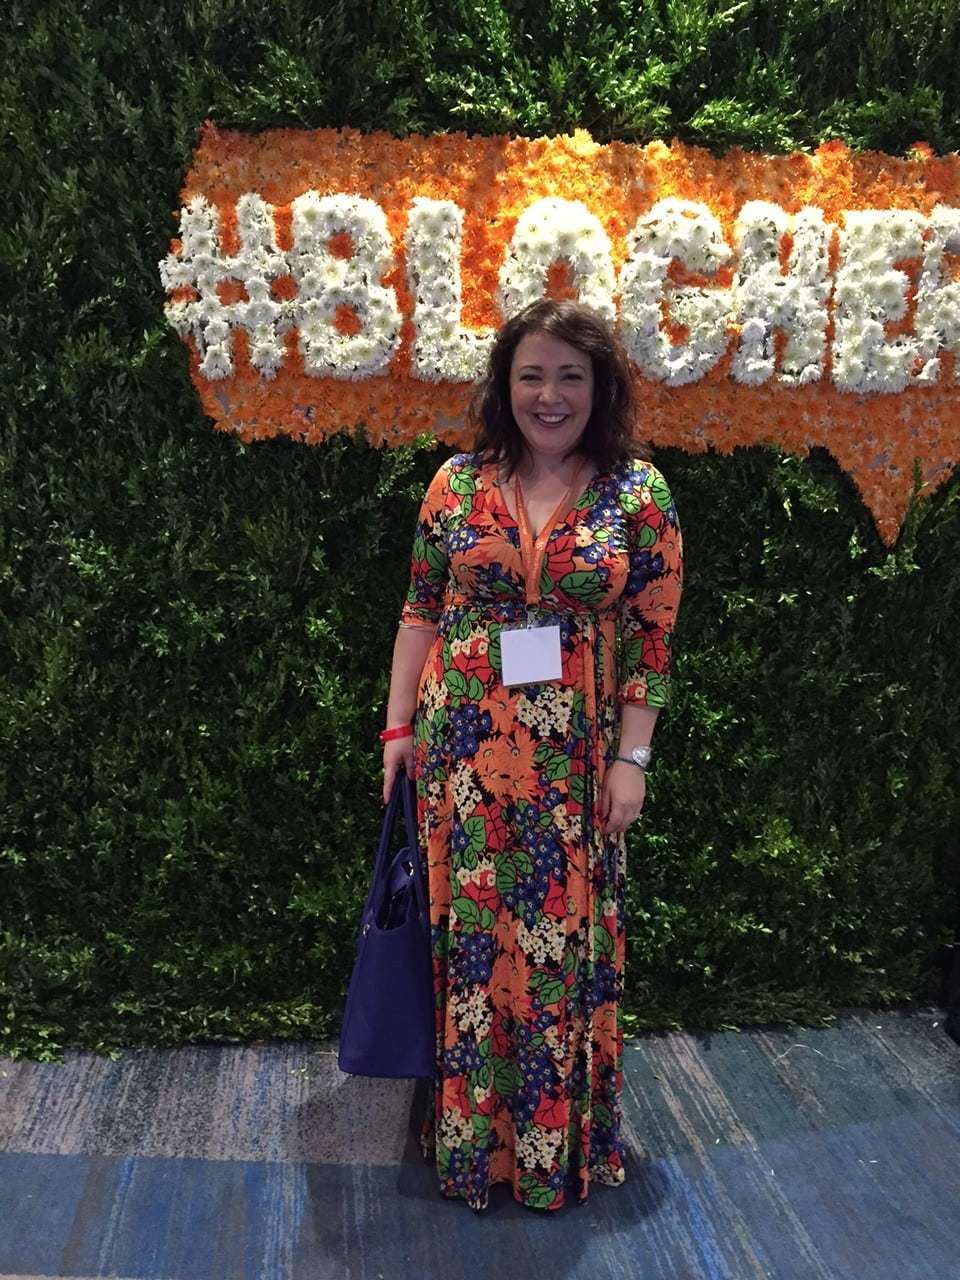 Alison Gary of Wardrobe Oxygen at BlogHer 2015